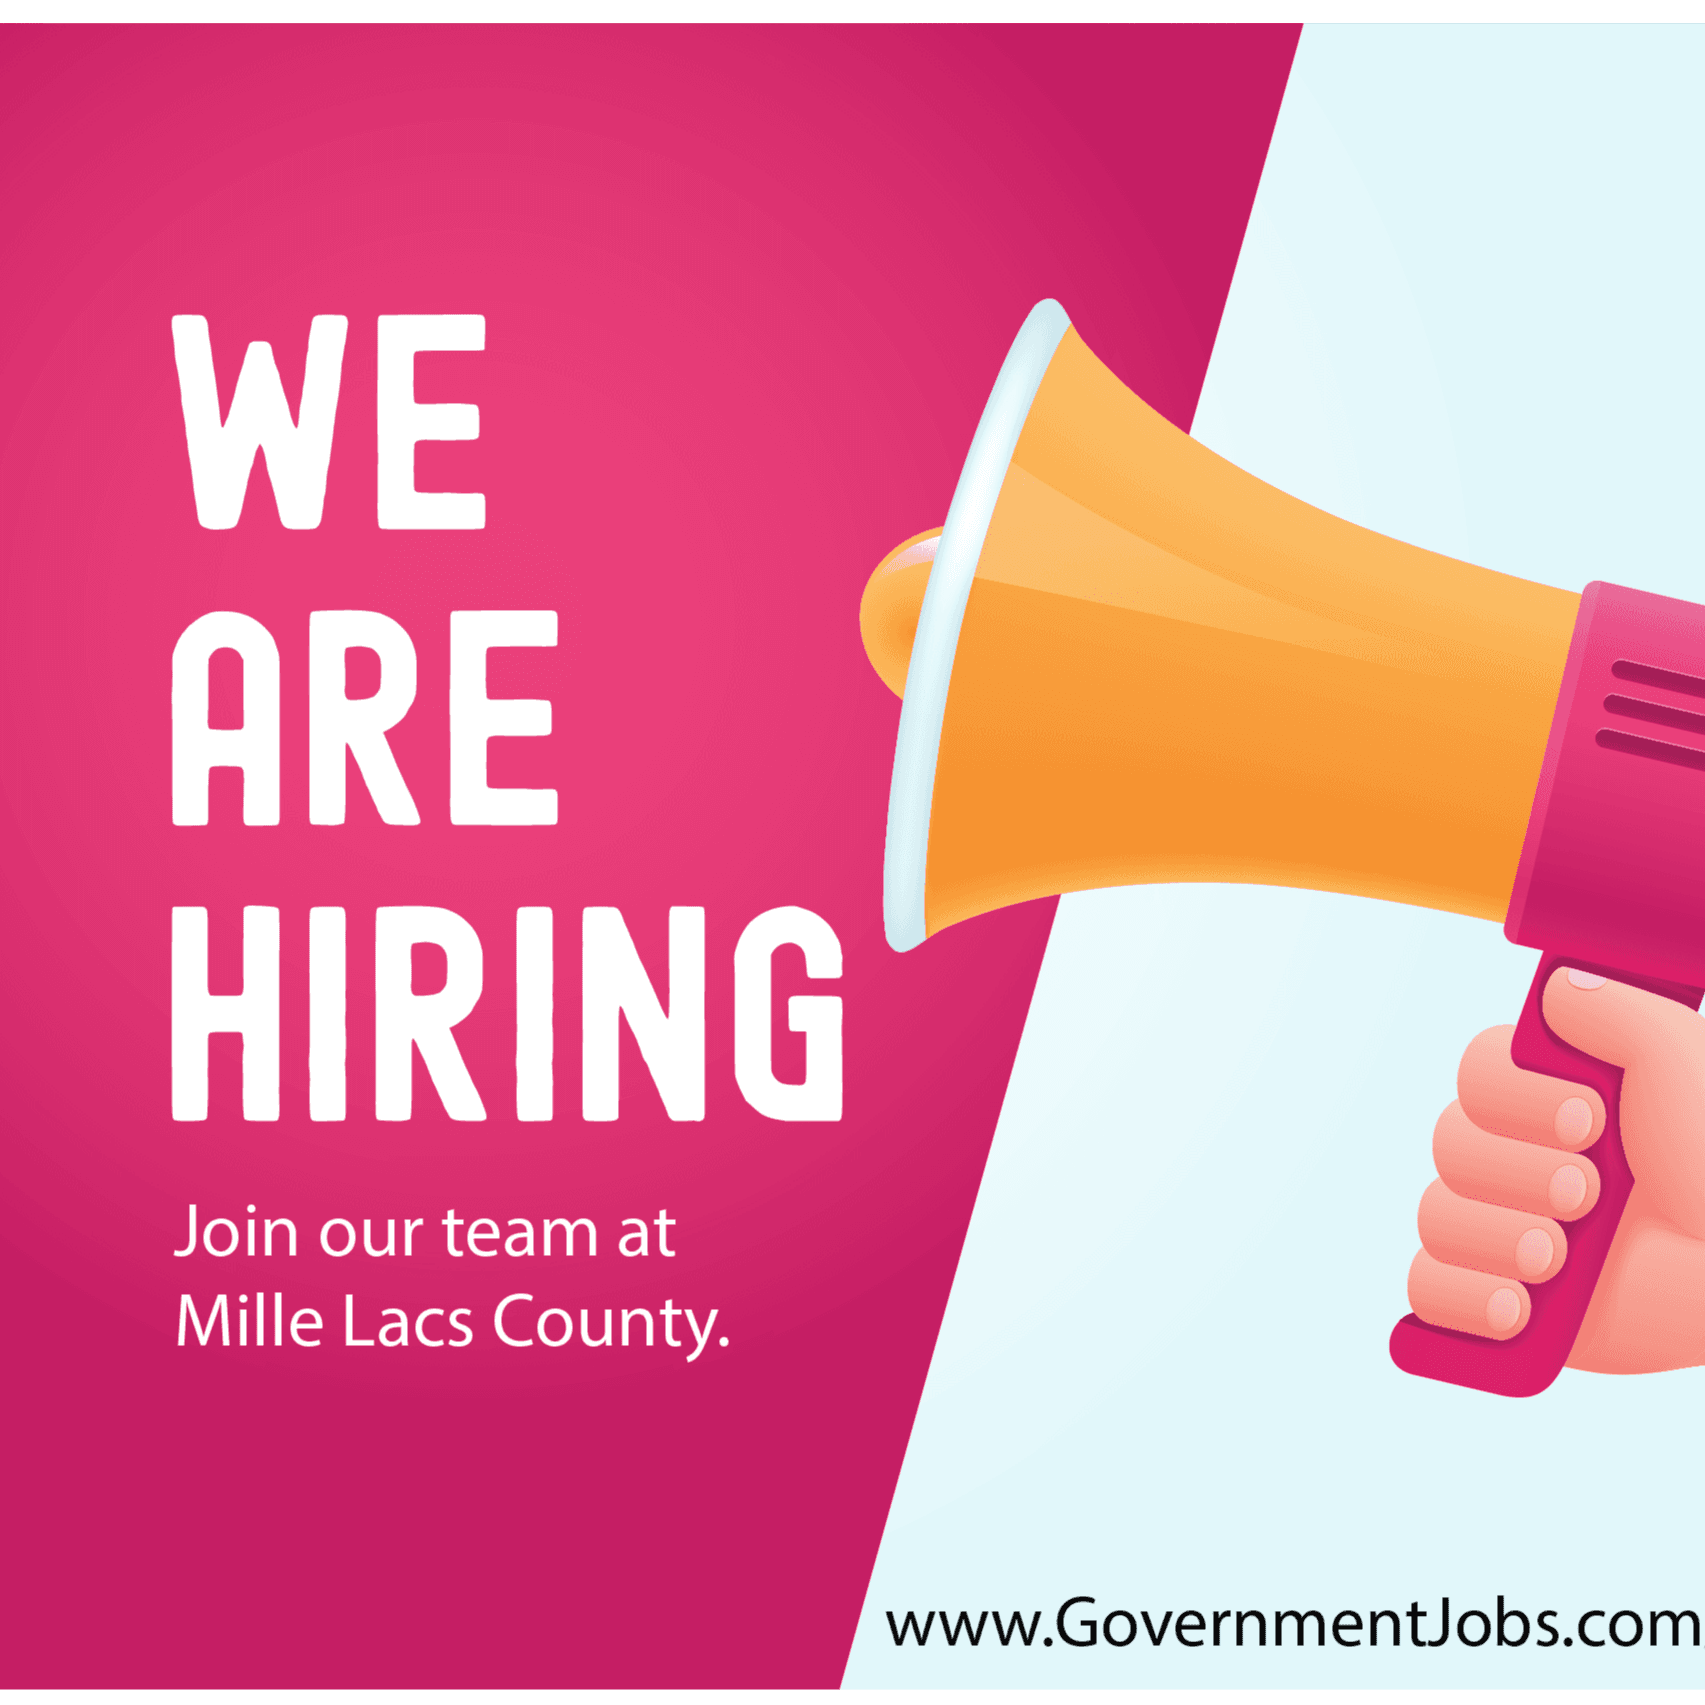 &#34We are hiring. Join our team at Mille Lacs County. www.governmentjobs.com/careers/millelacs&#34